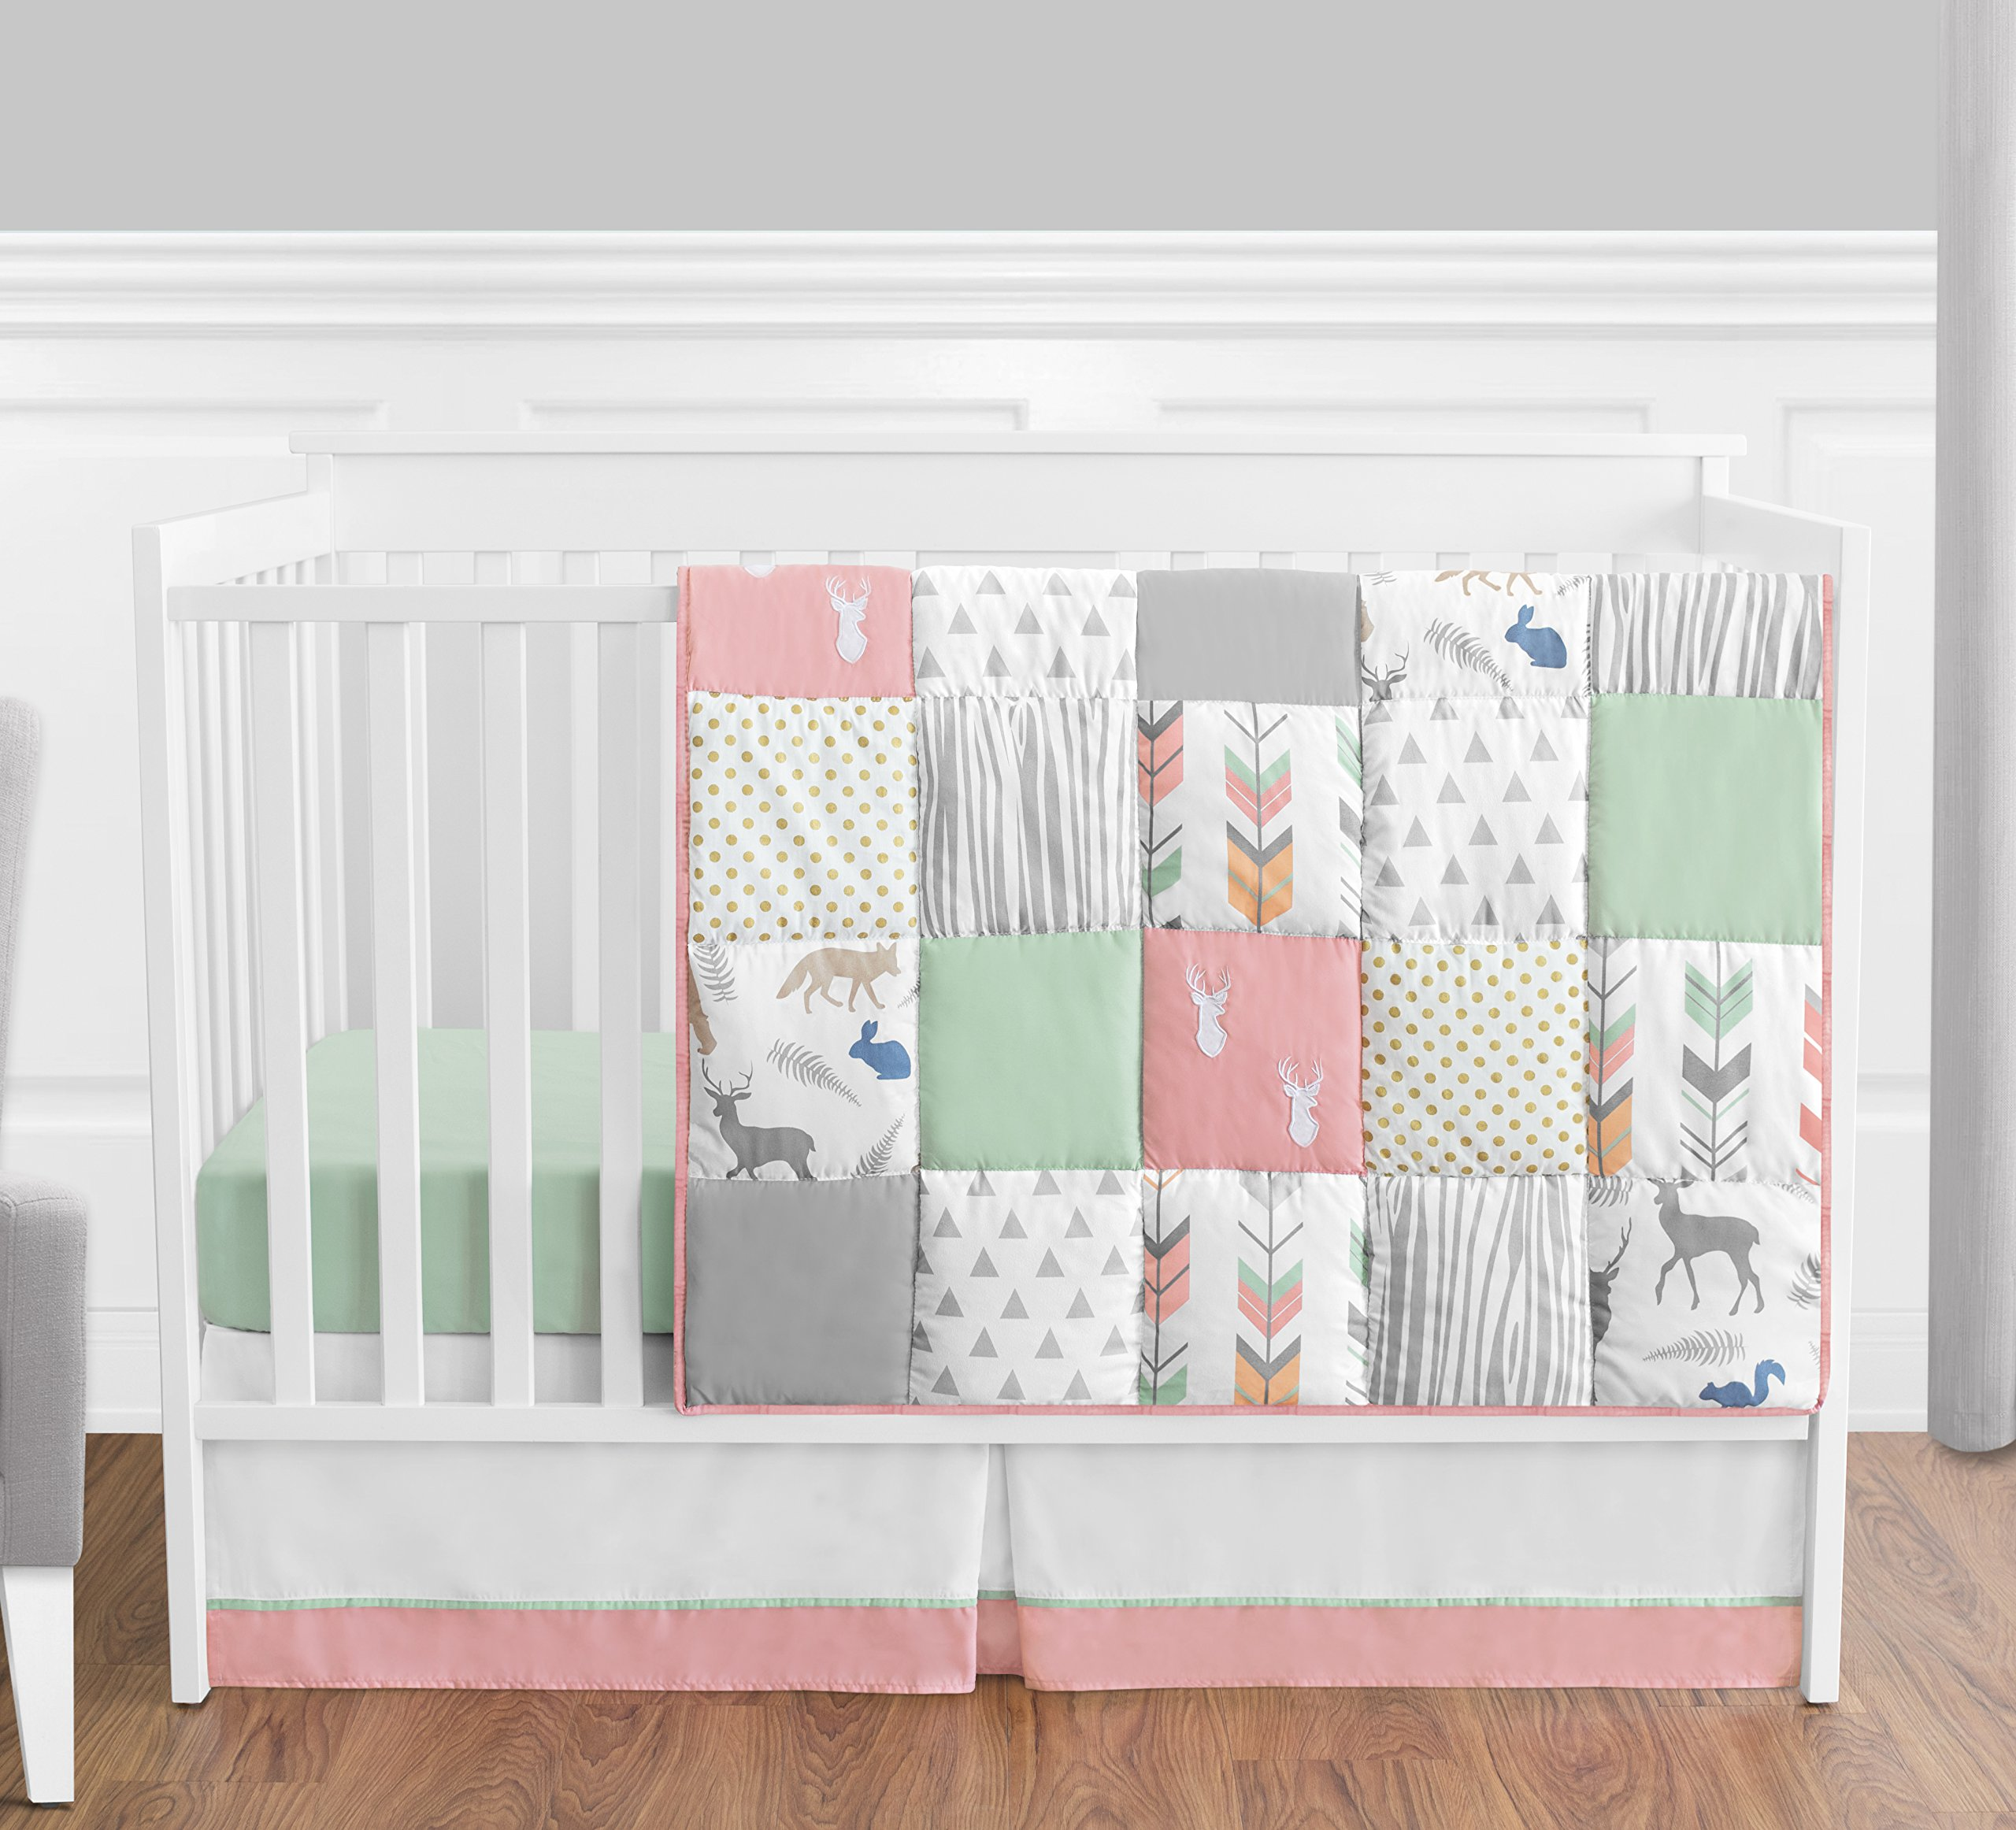 In Crib Cotton Five Piece Kit Crib Bed Cotton Removable And Washable Childrens Bedding Package Novel Design;